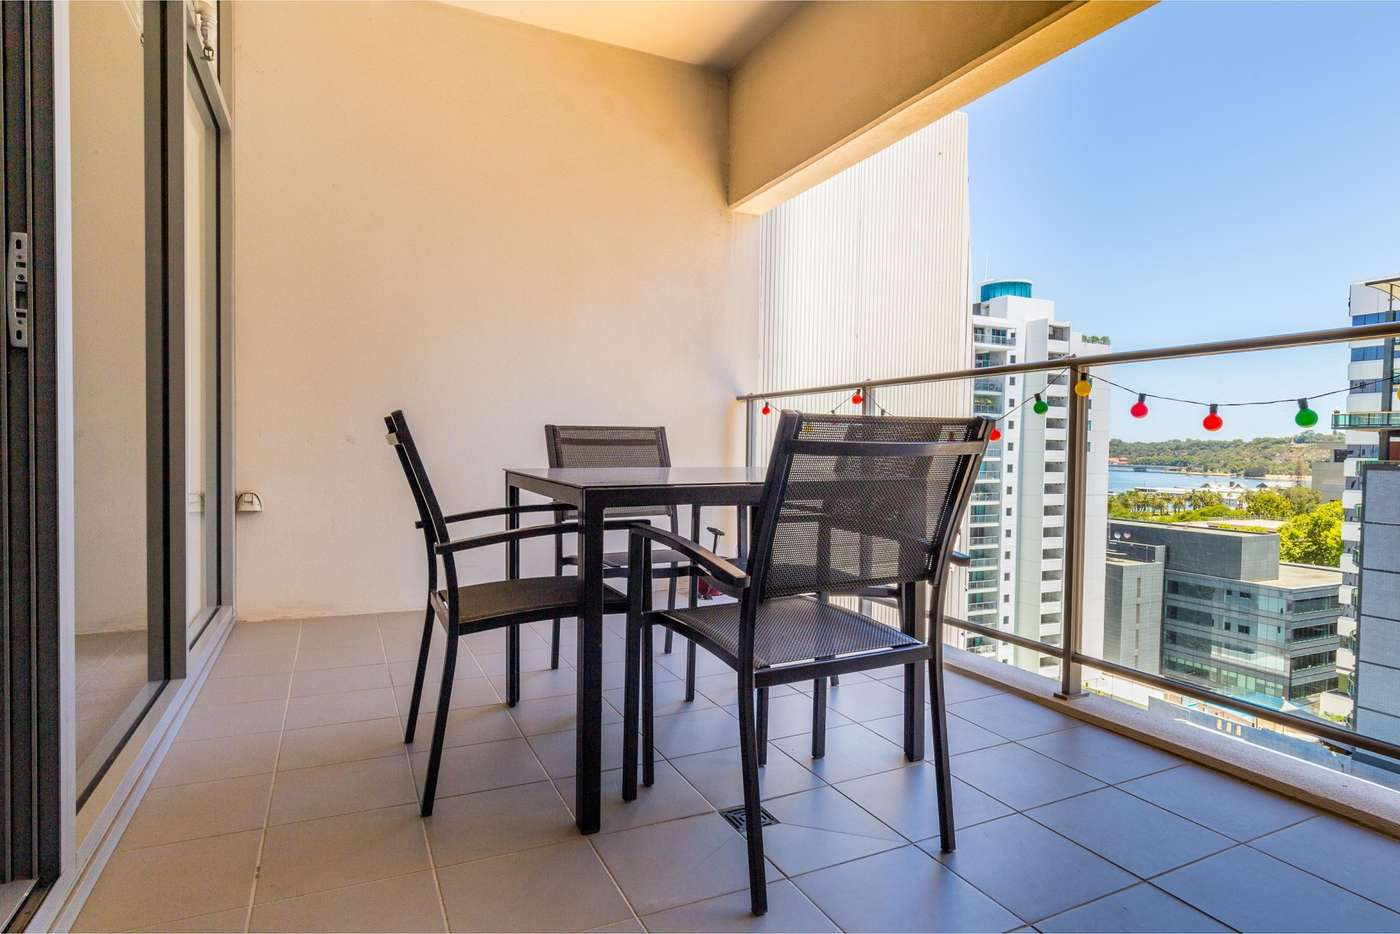 Sixth view of Homely apartment listing, 704/237 Adelaide Terrace, Perth WA 6000